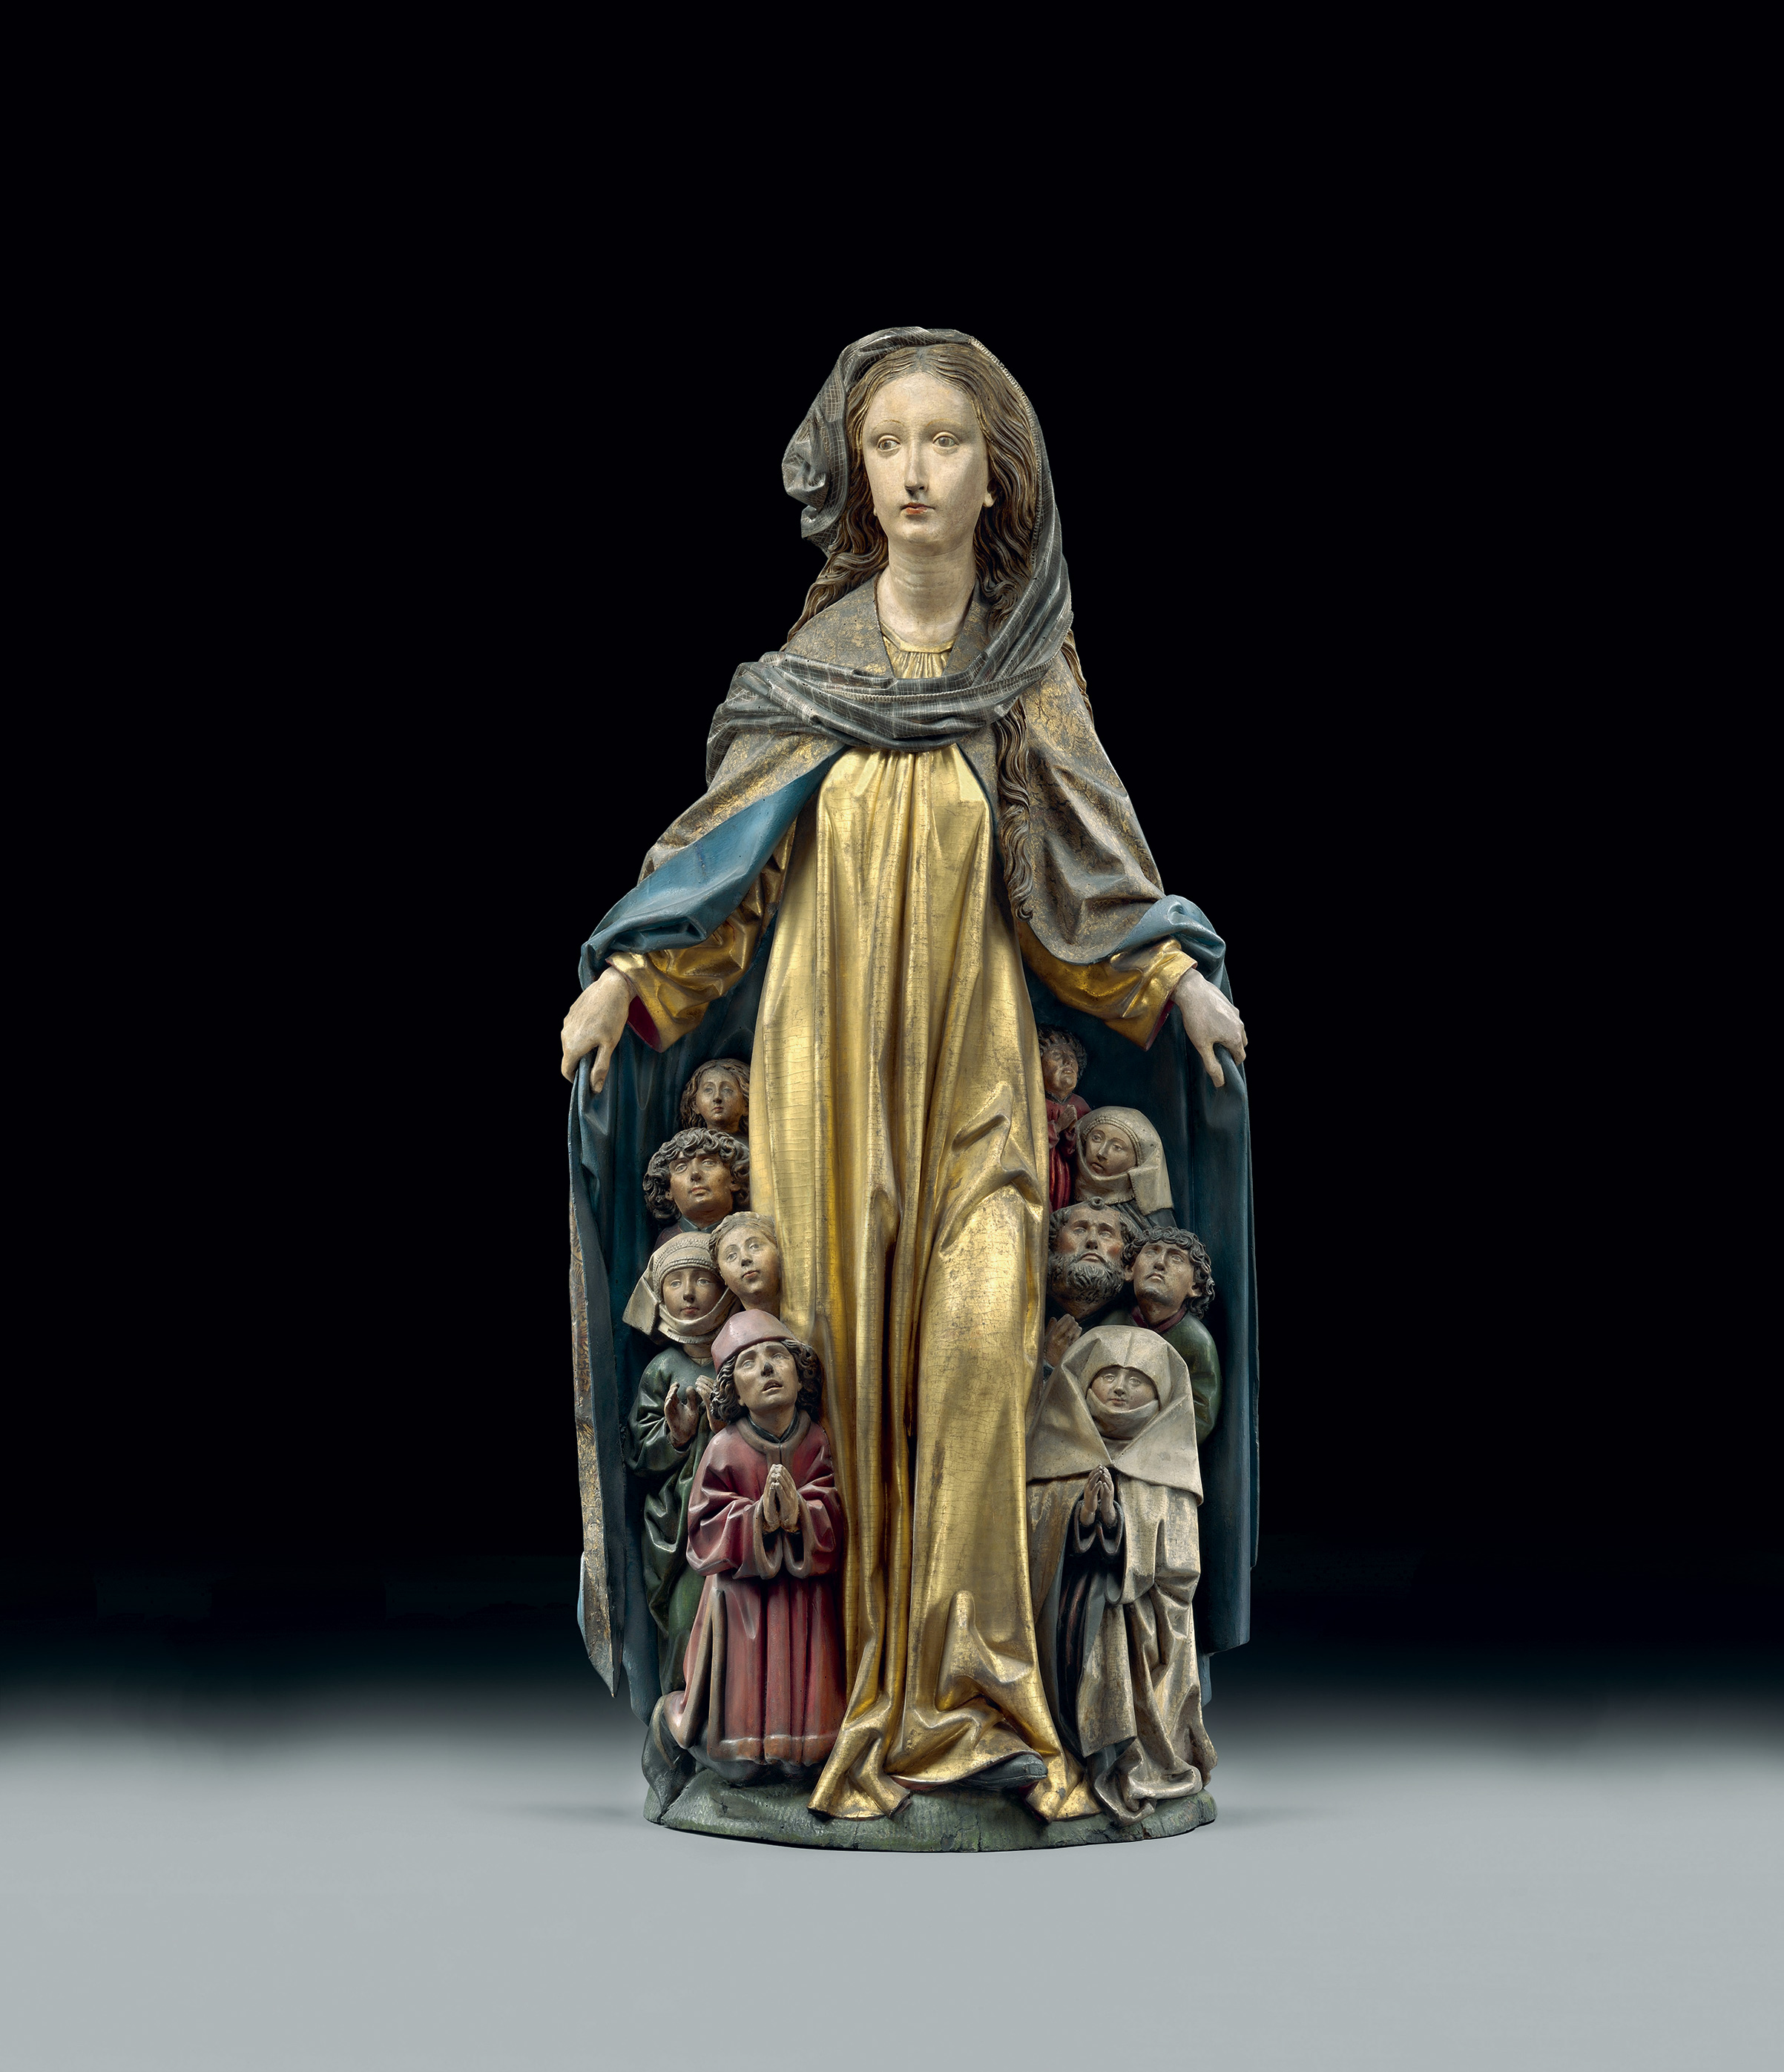 The Madonna with Protective Cloak, by Michel Erhart or Friedrich Schramm, c. 1480.